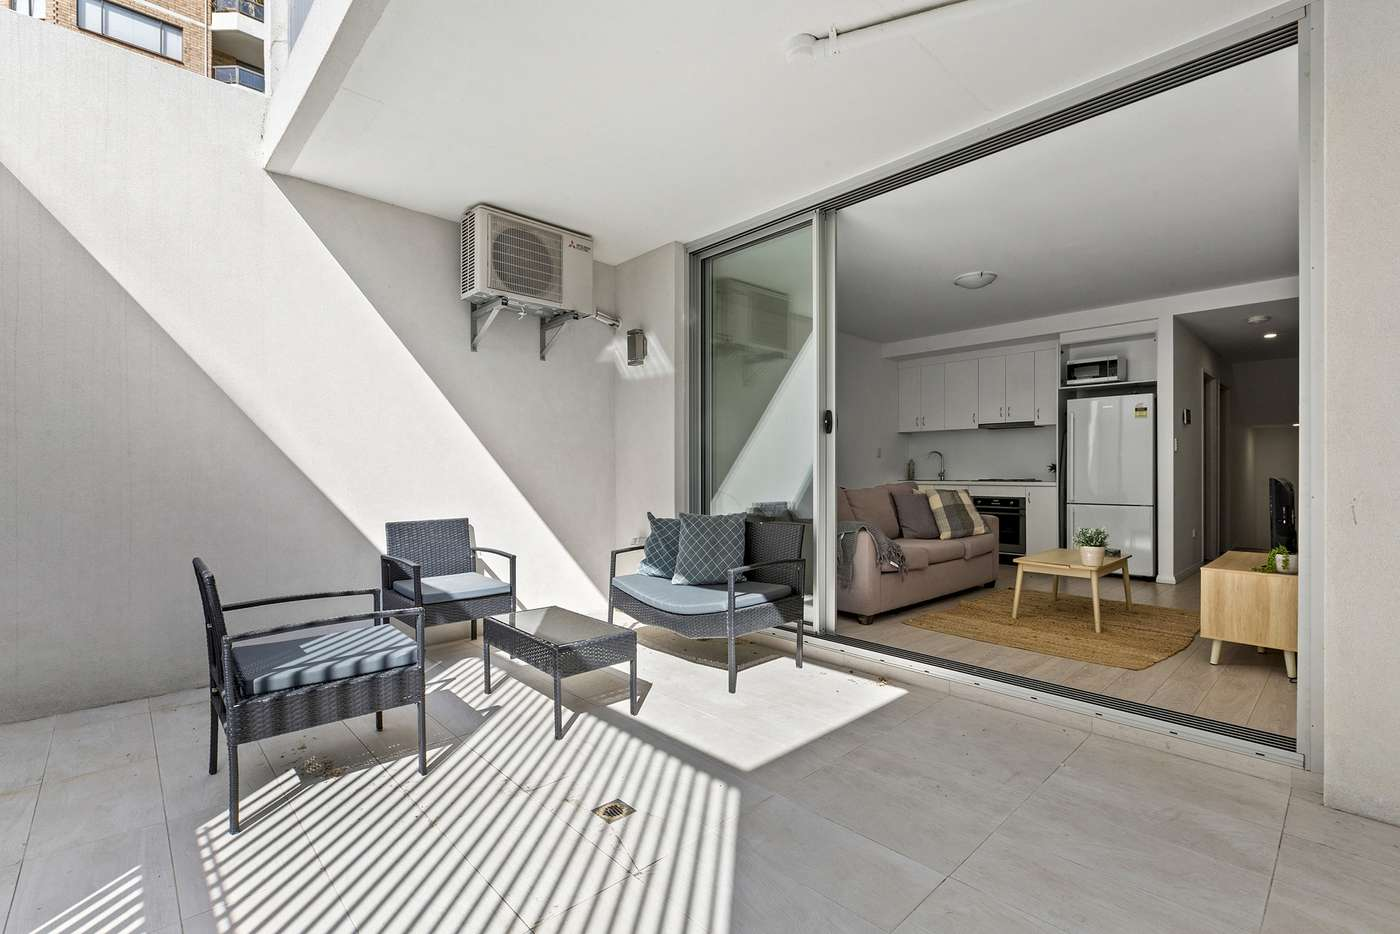 Main view of Homely apartment listing, 9/190 Victoria Street, Potts Point NSW 2011